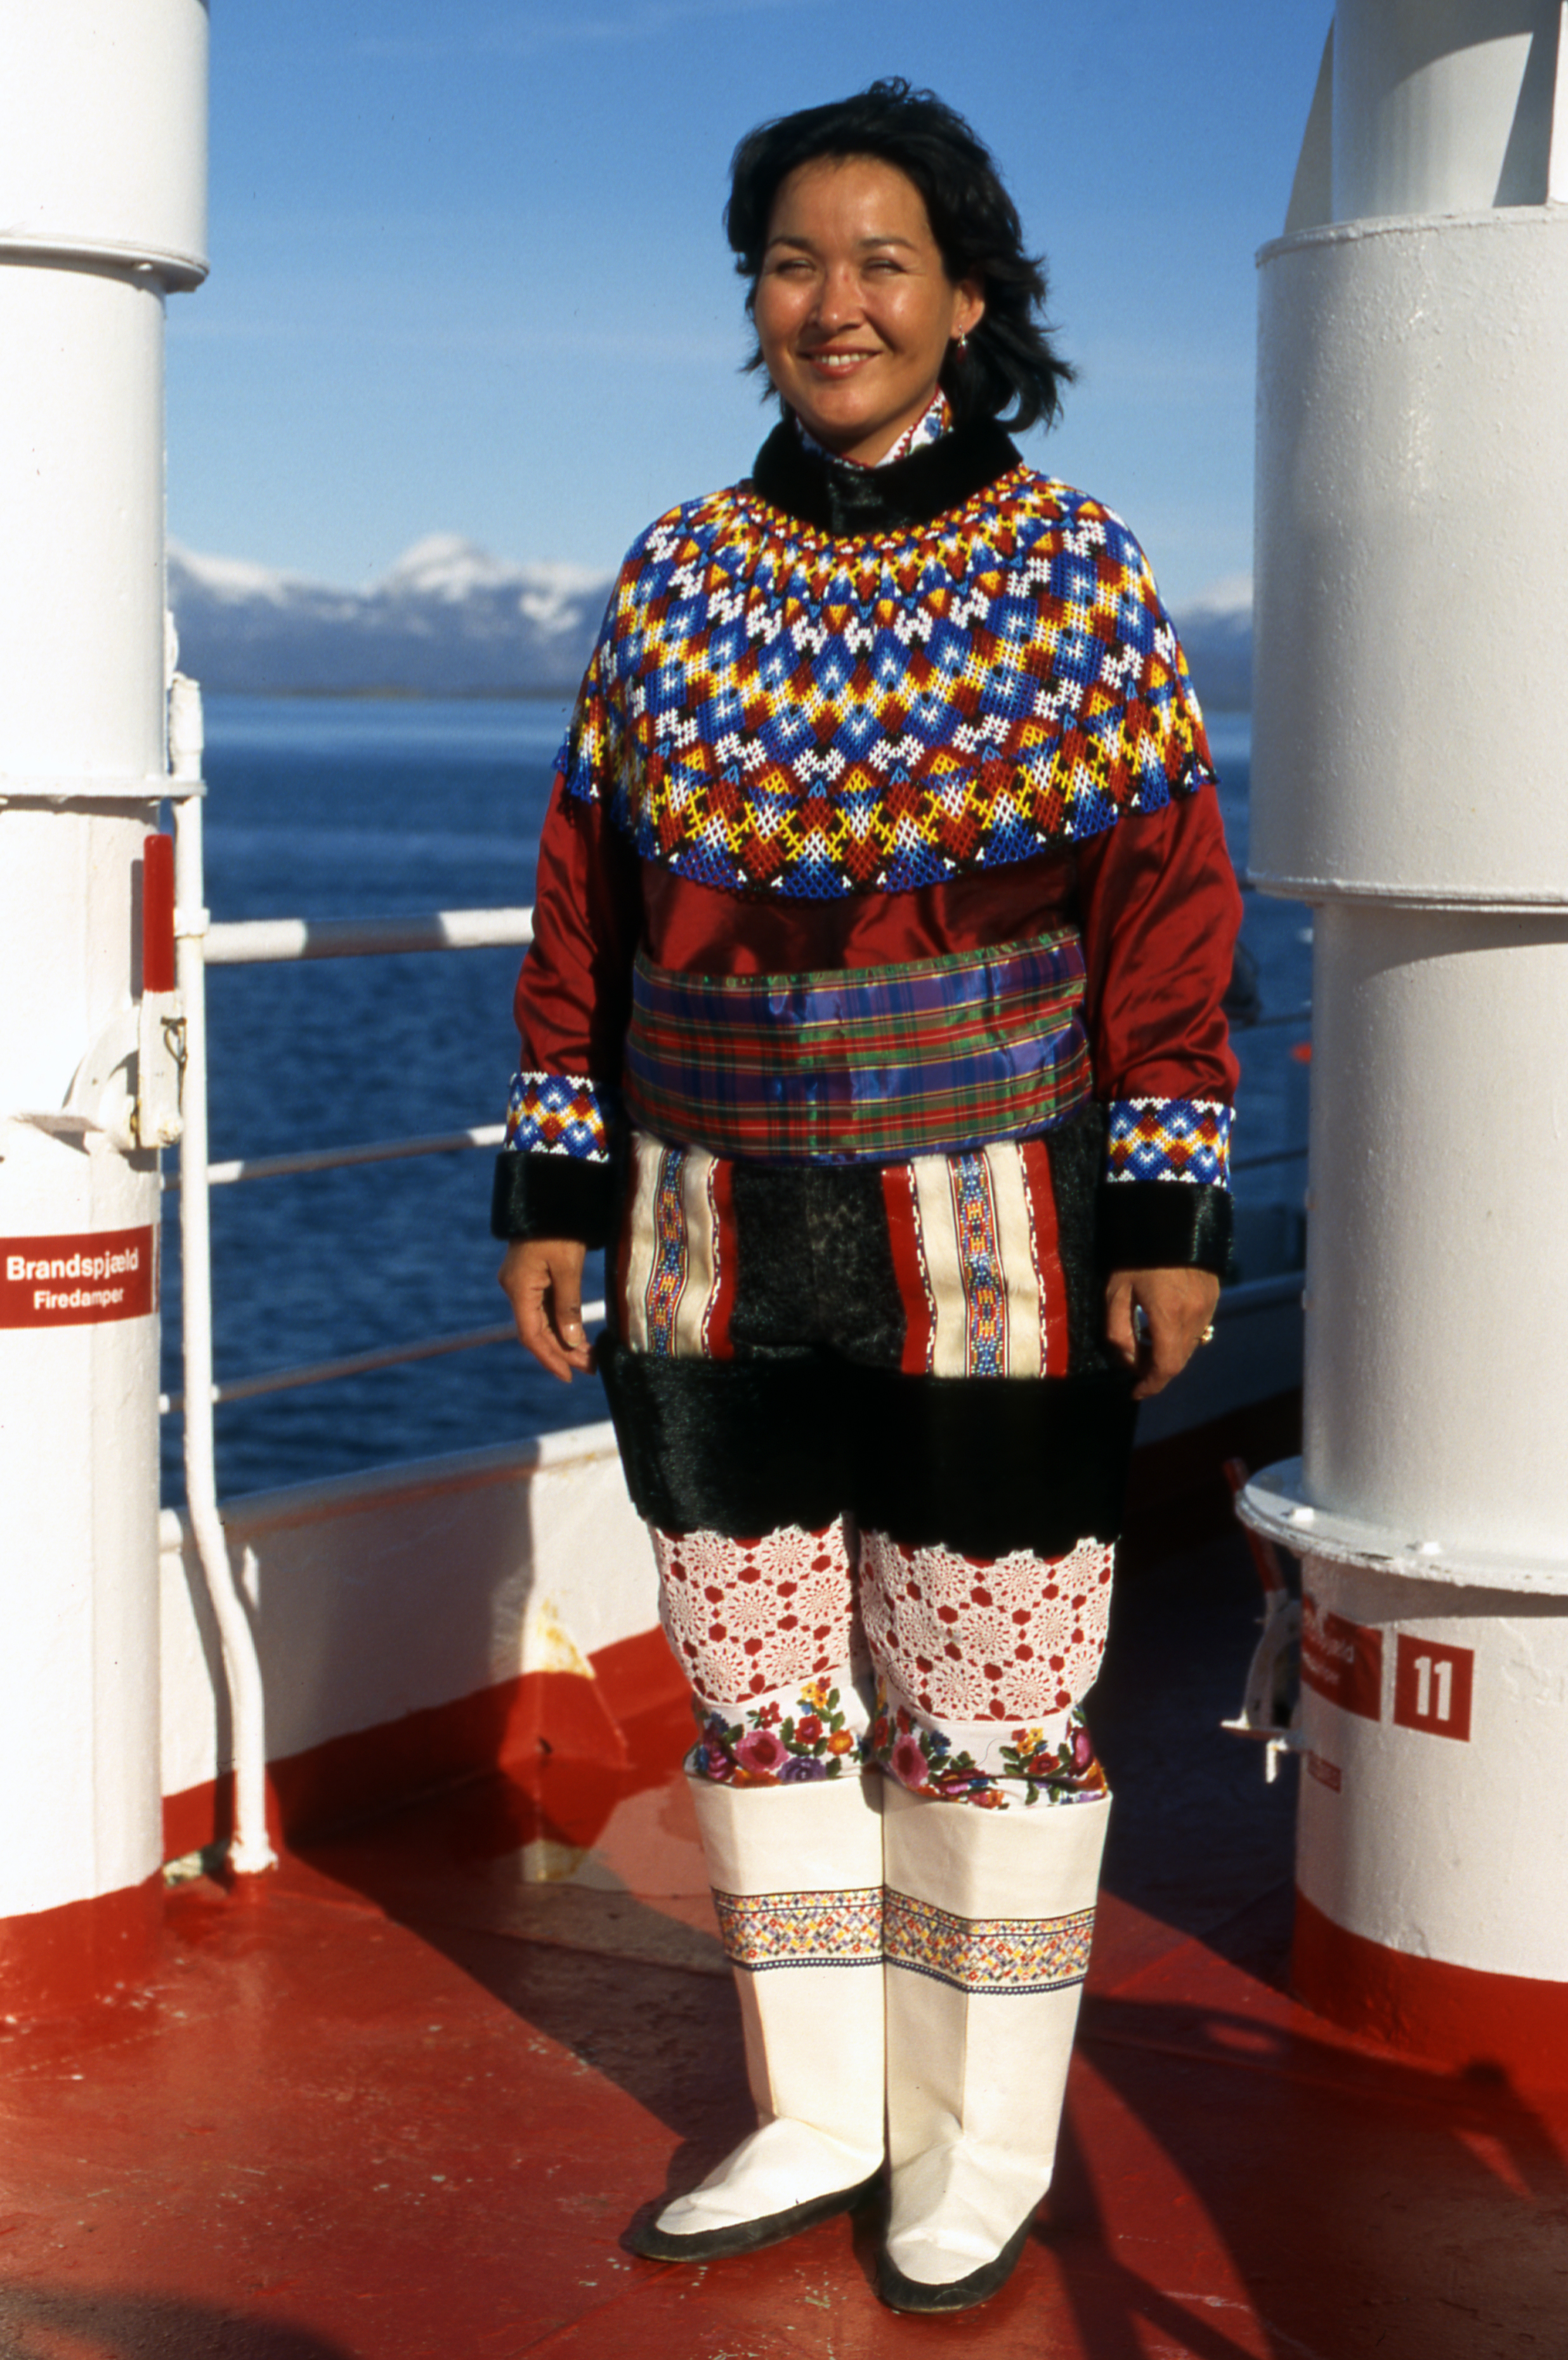 Greenlandic Inuit Woman In Traditional Dress On Cruise